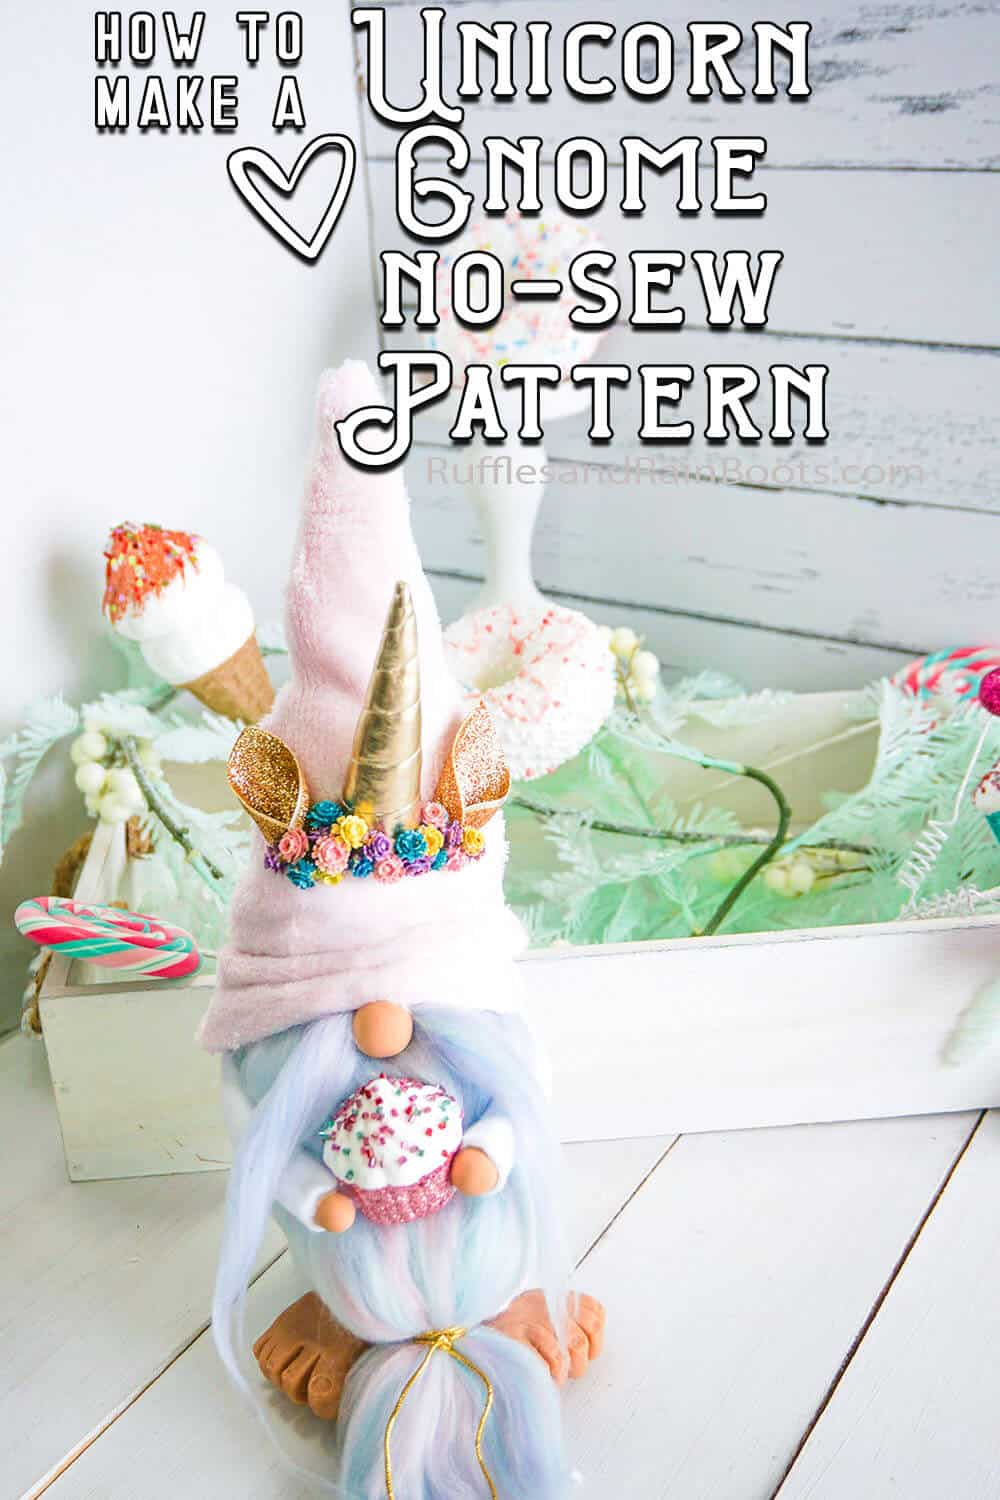 tomte nisse gnome pattern with a unicorn horn with text which reads how to make a unicorn gnome no-sew pattern